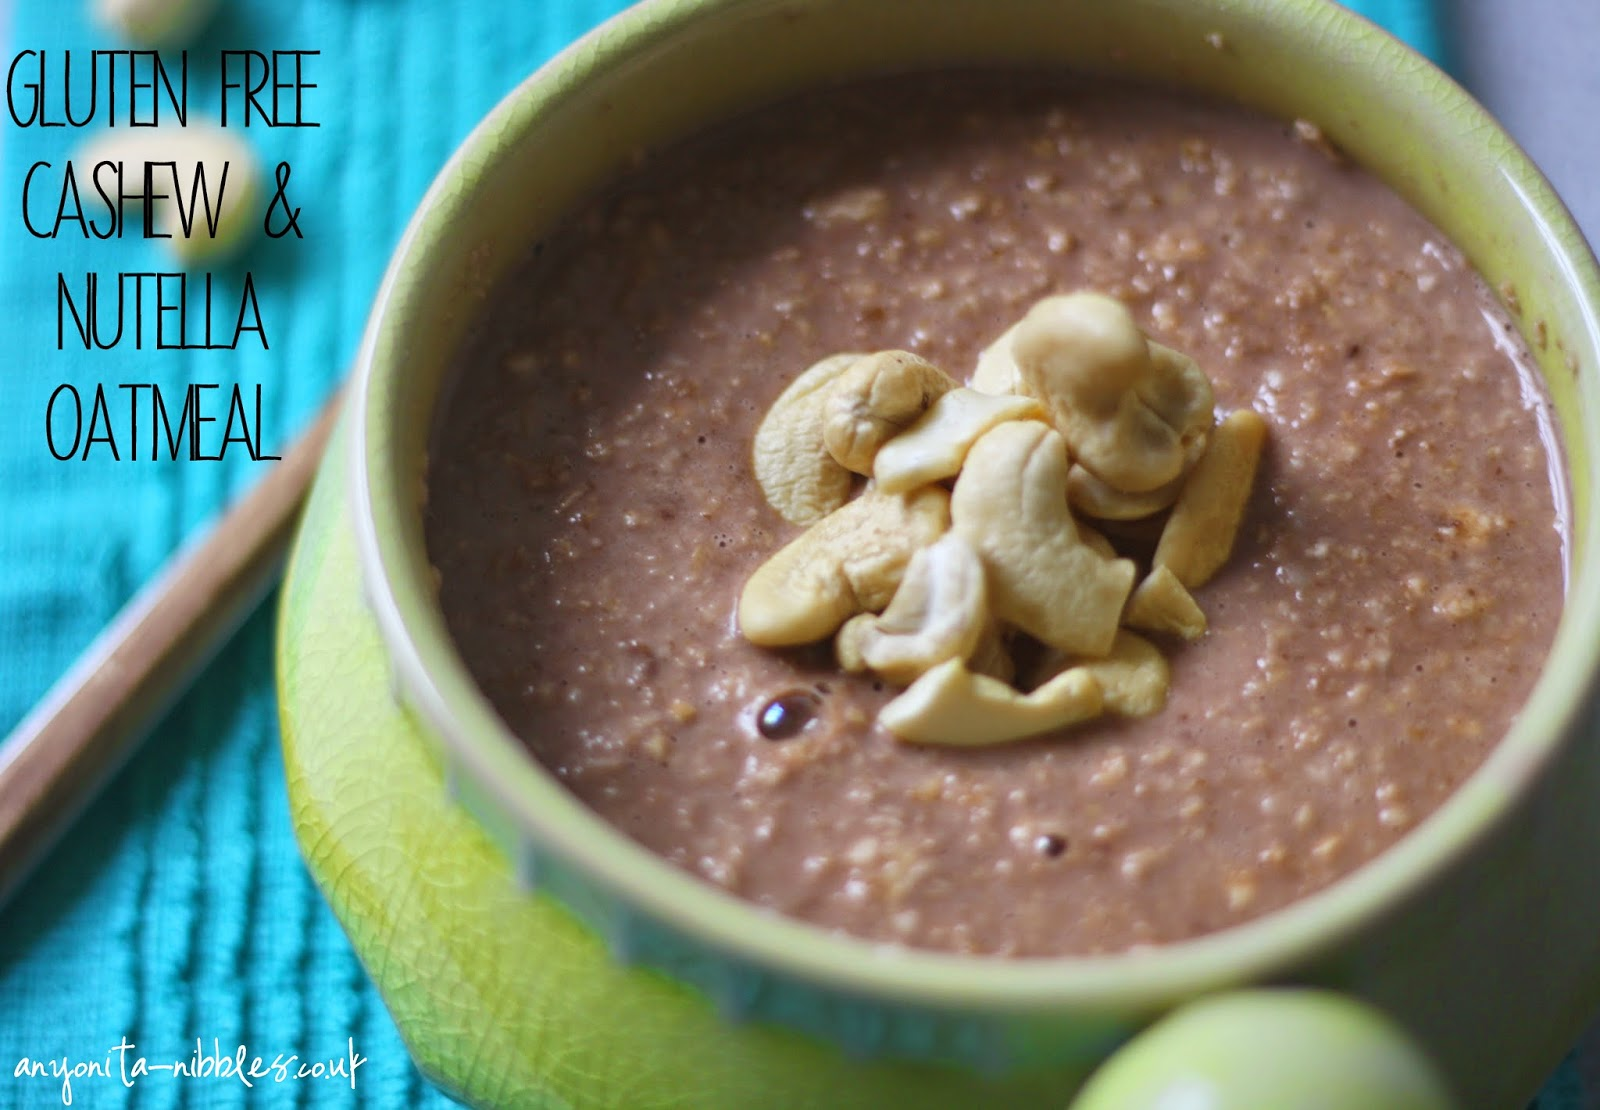 Gluten Free Cashew & Nutella Oatmeal from Anyonita-nibbles.co.uk